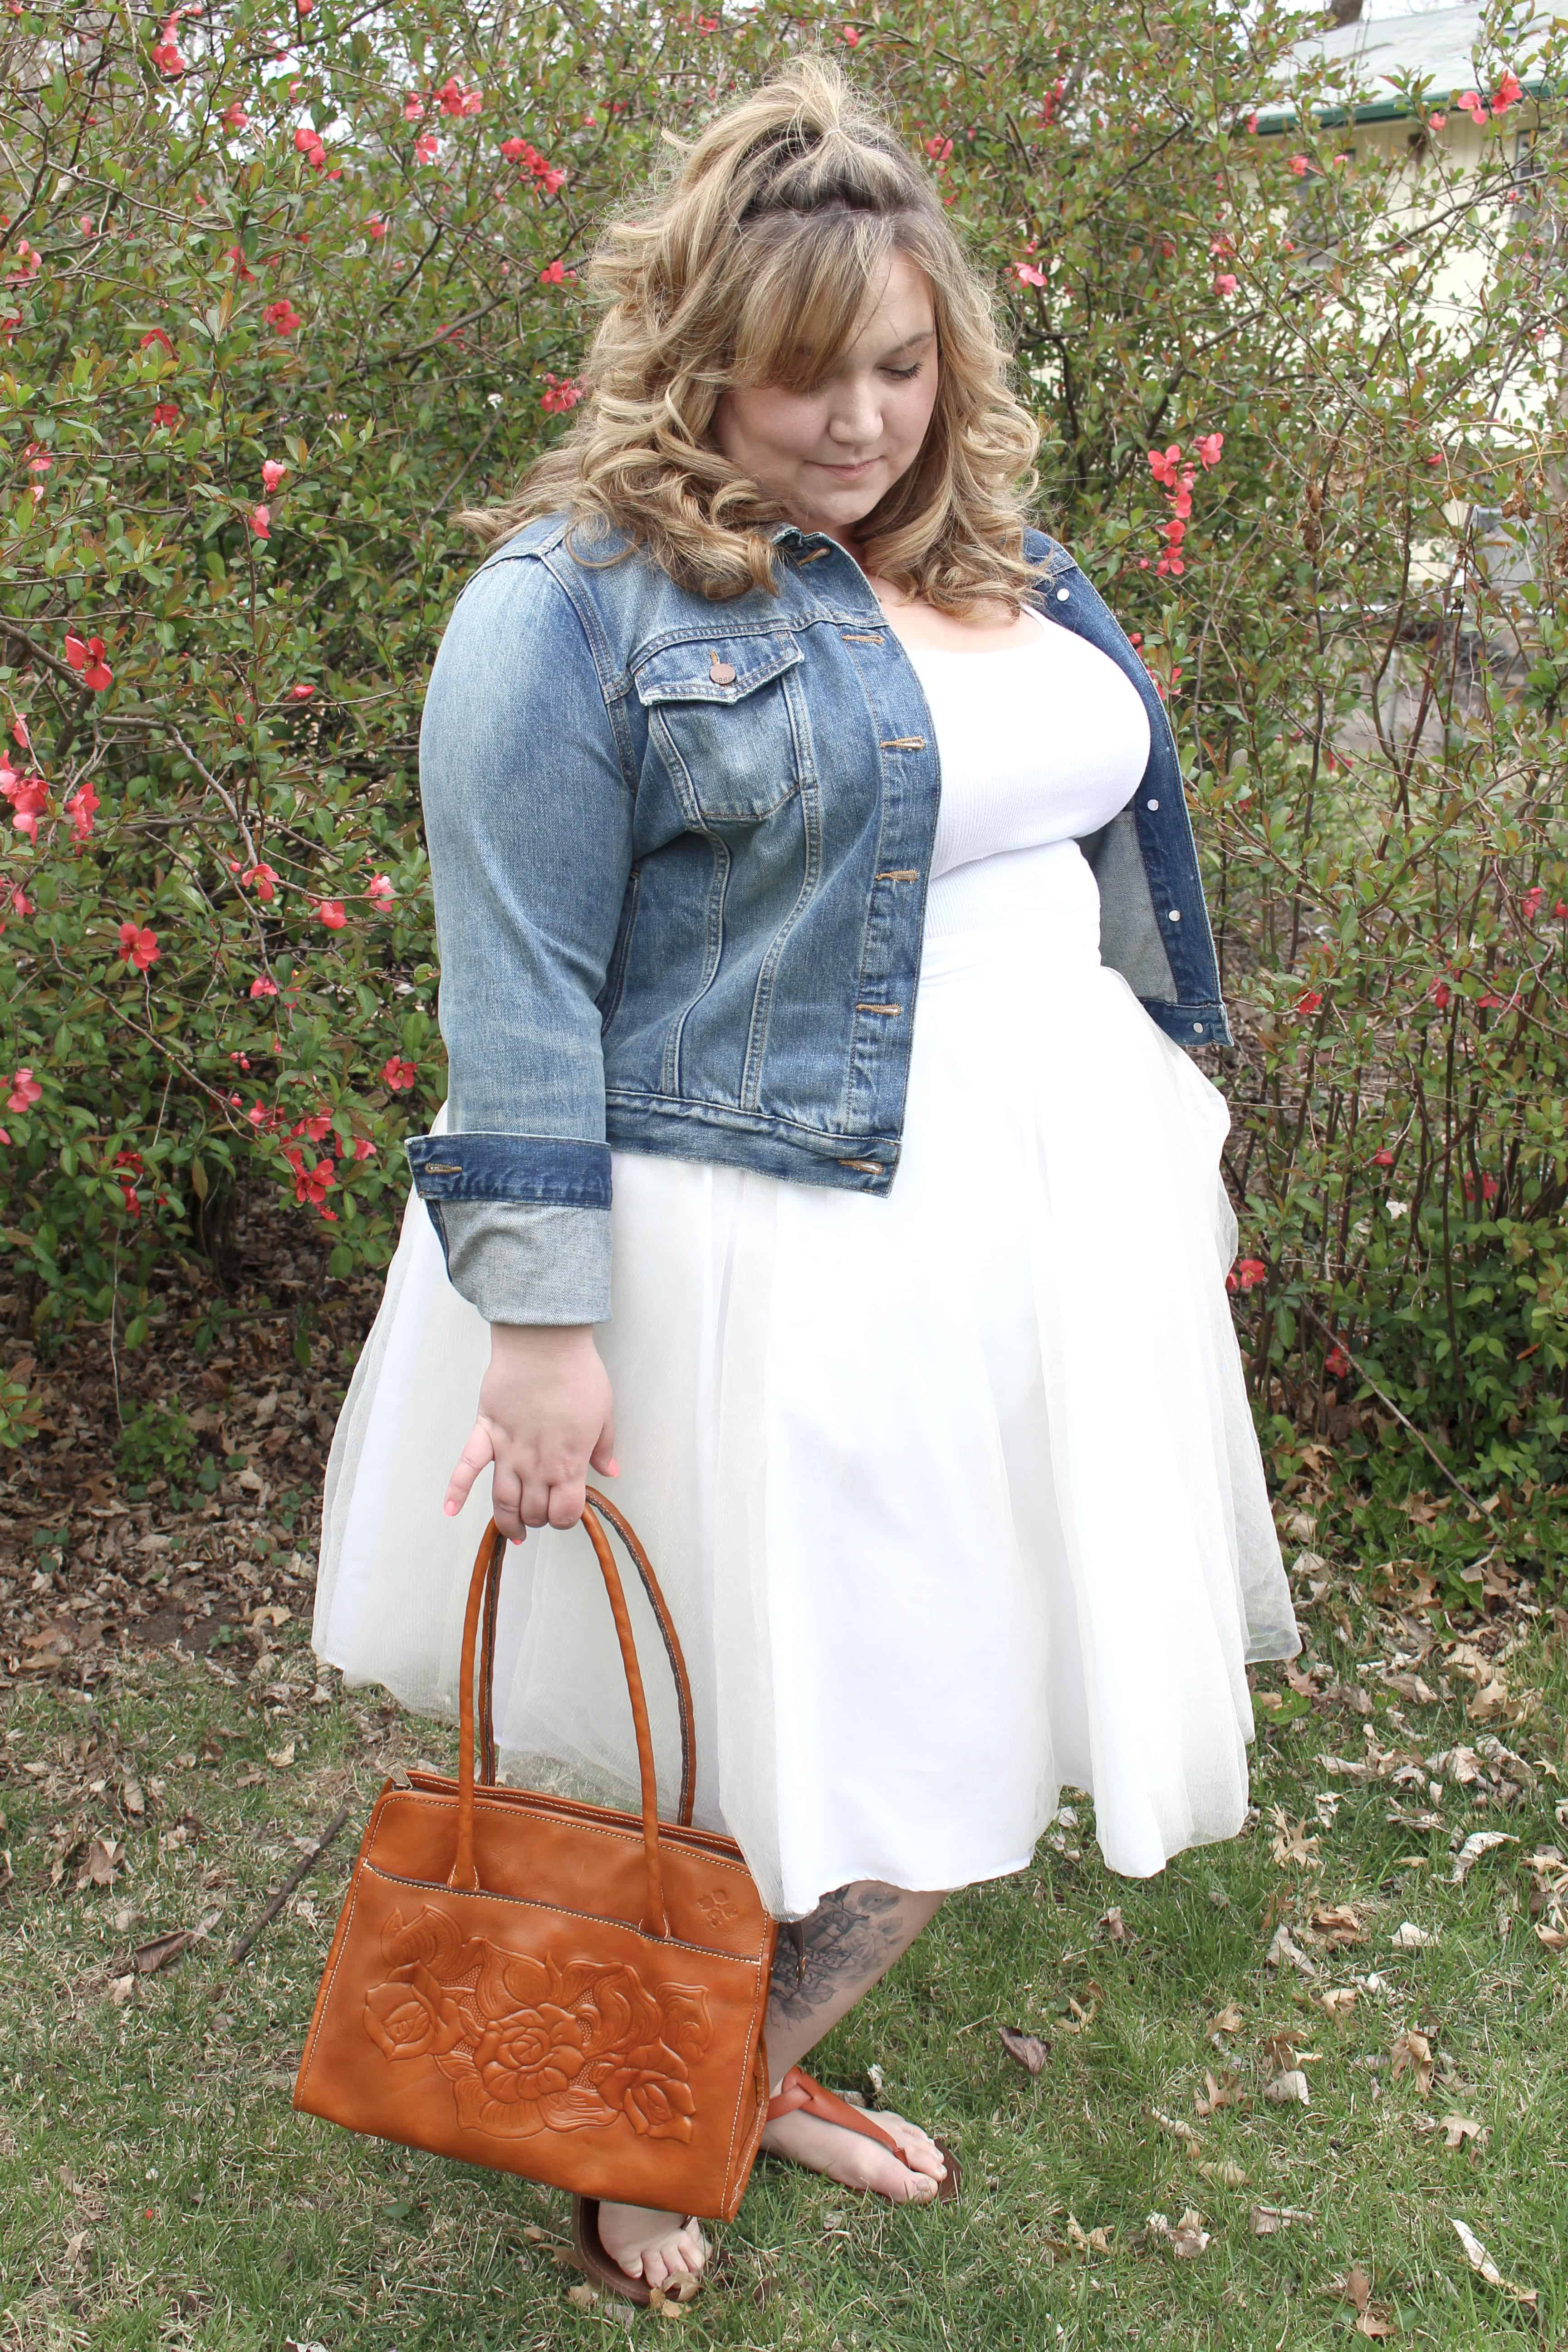 single bbw women in happy valley Australian dating site focused on fun features blogs, photo contests, video chat and more adult singles in happy valley, adelaide, sa, australia.